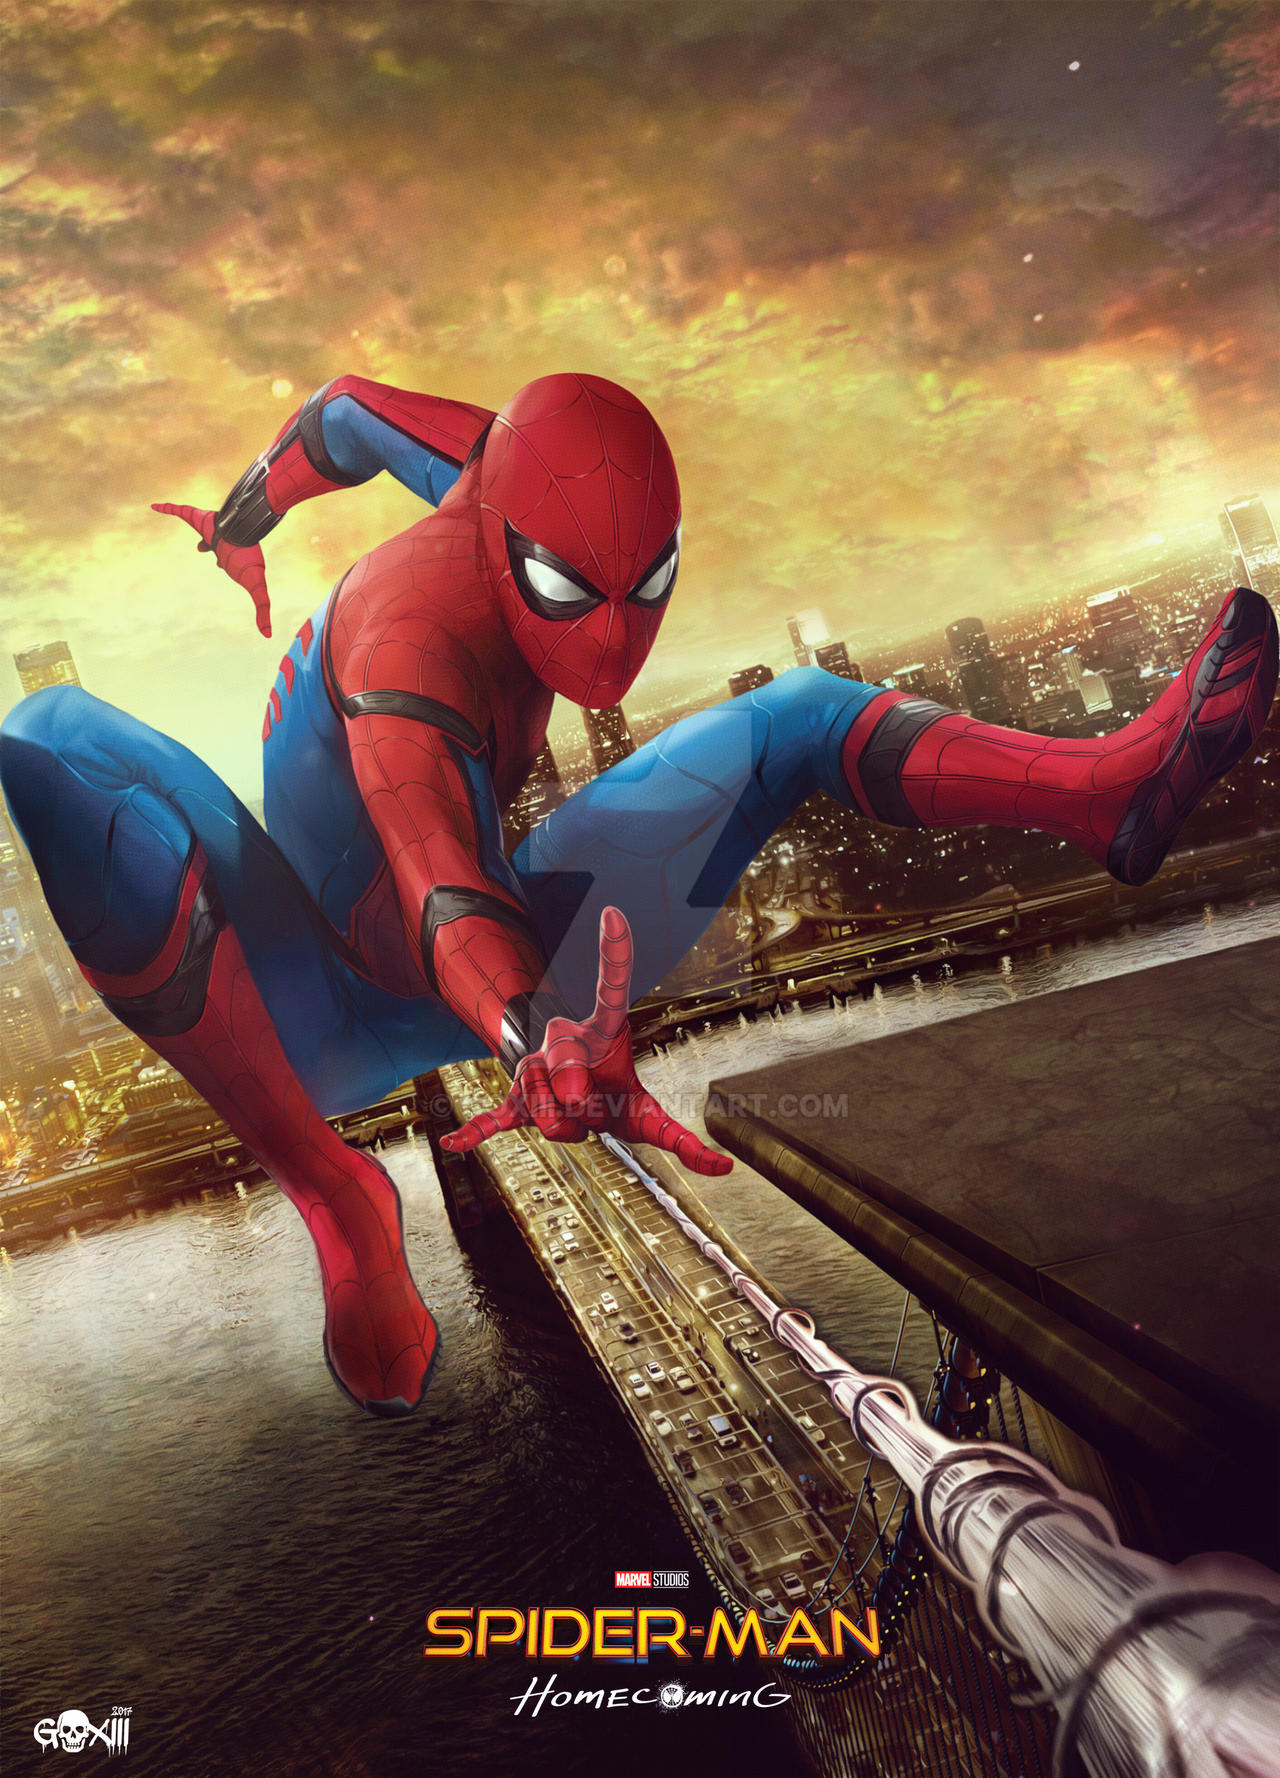 Spider-Man Homecoming Poster by GOXIII on DeviantArt